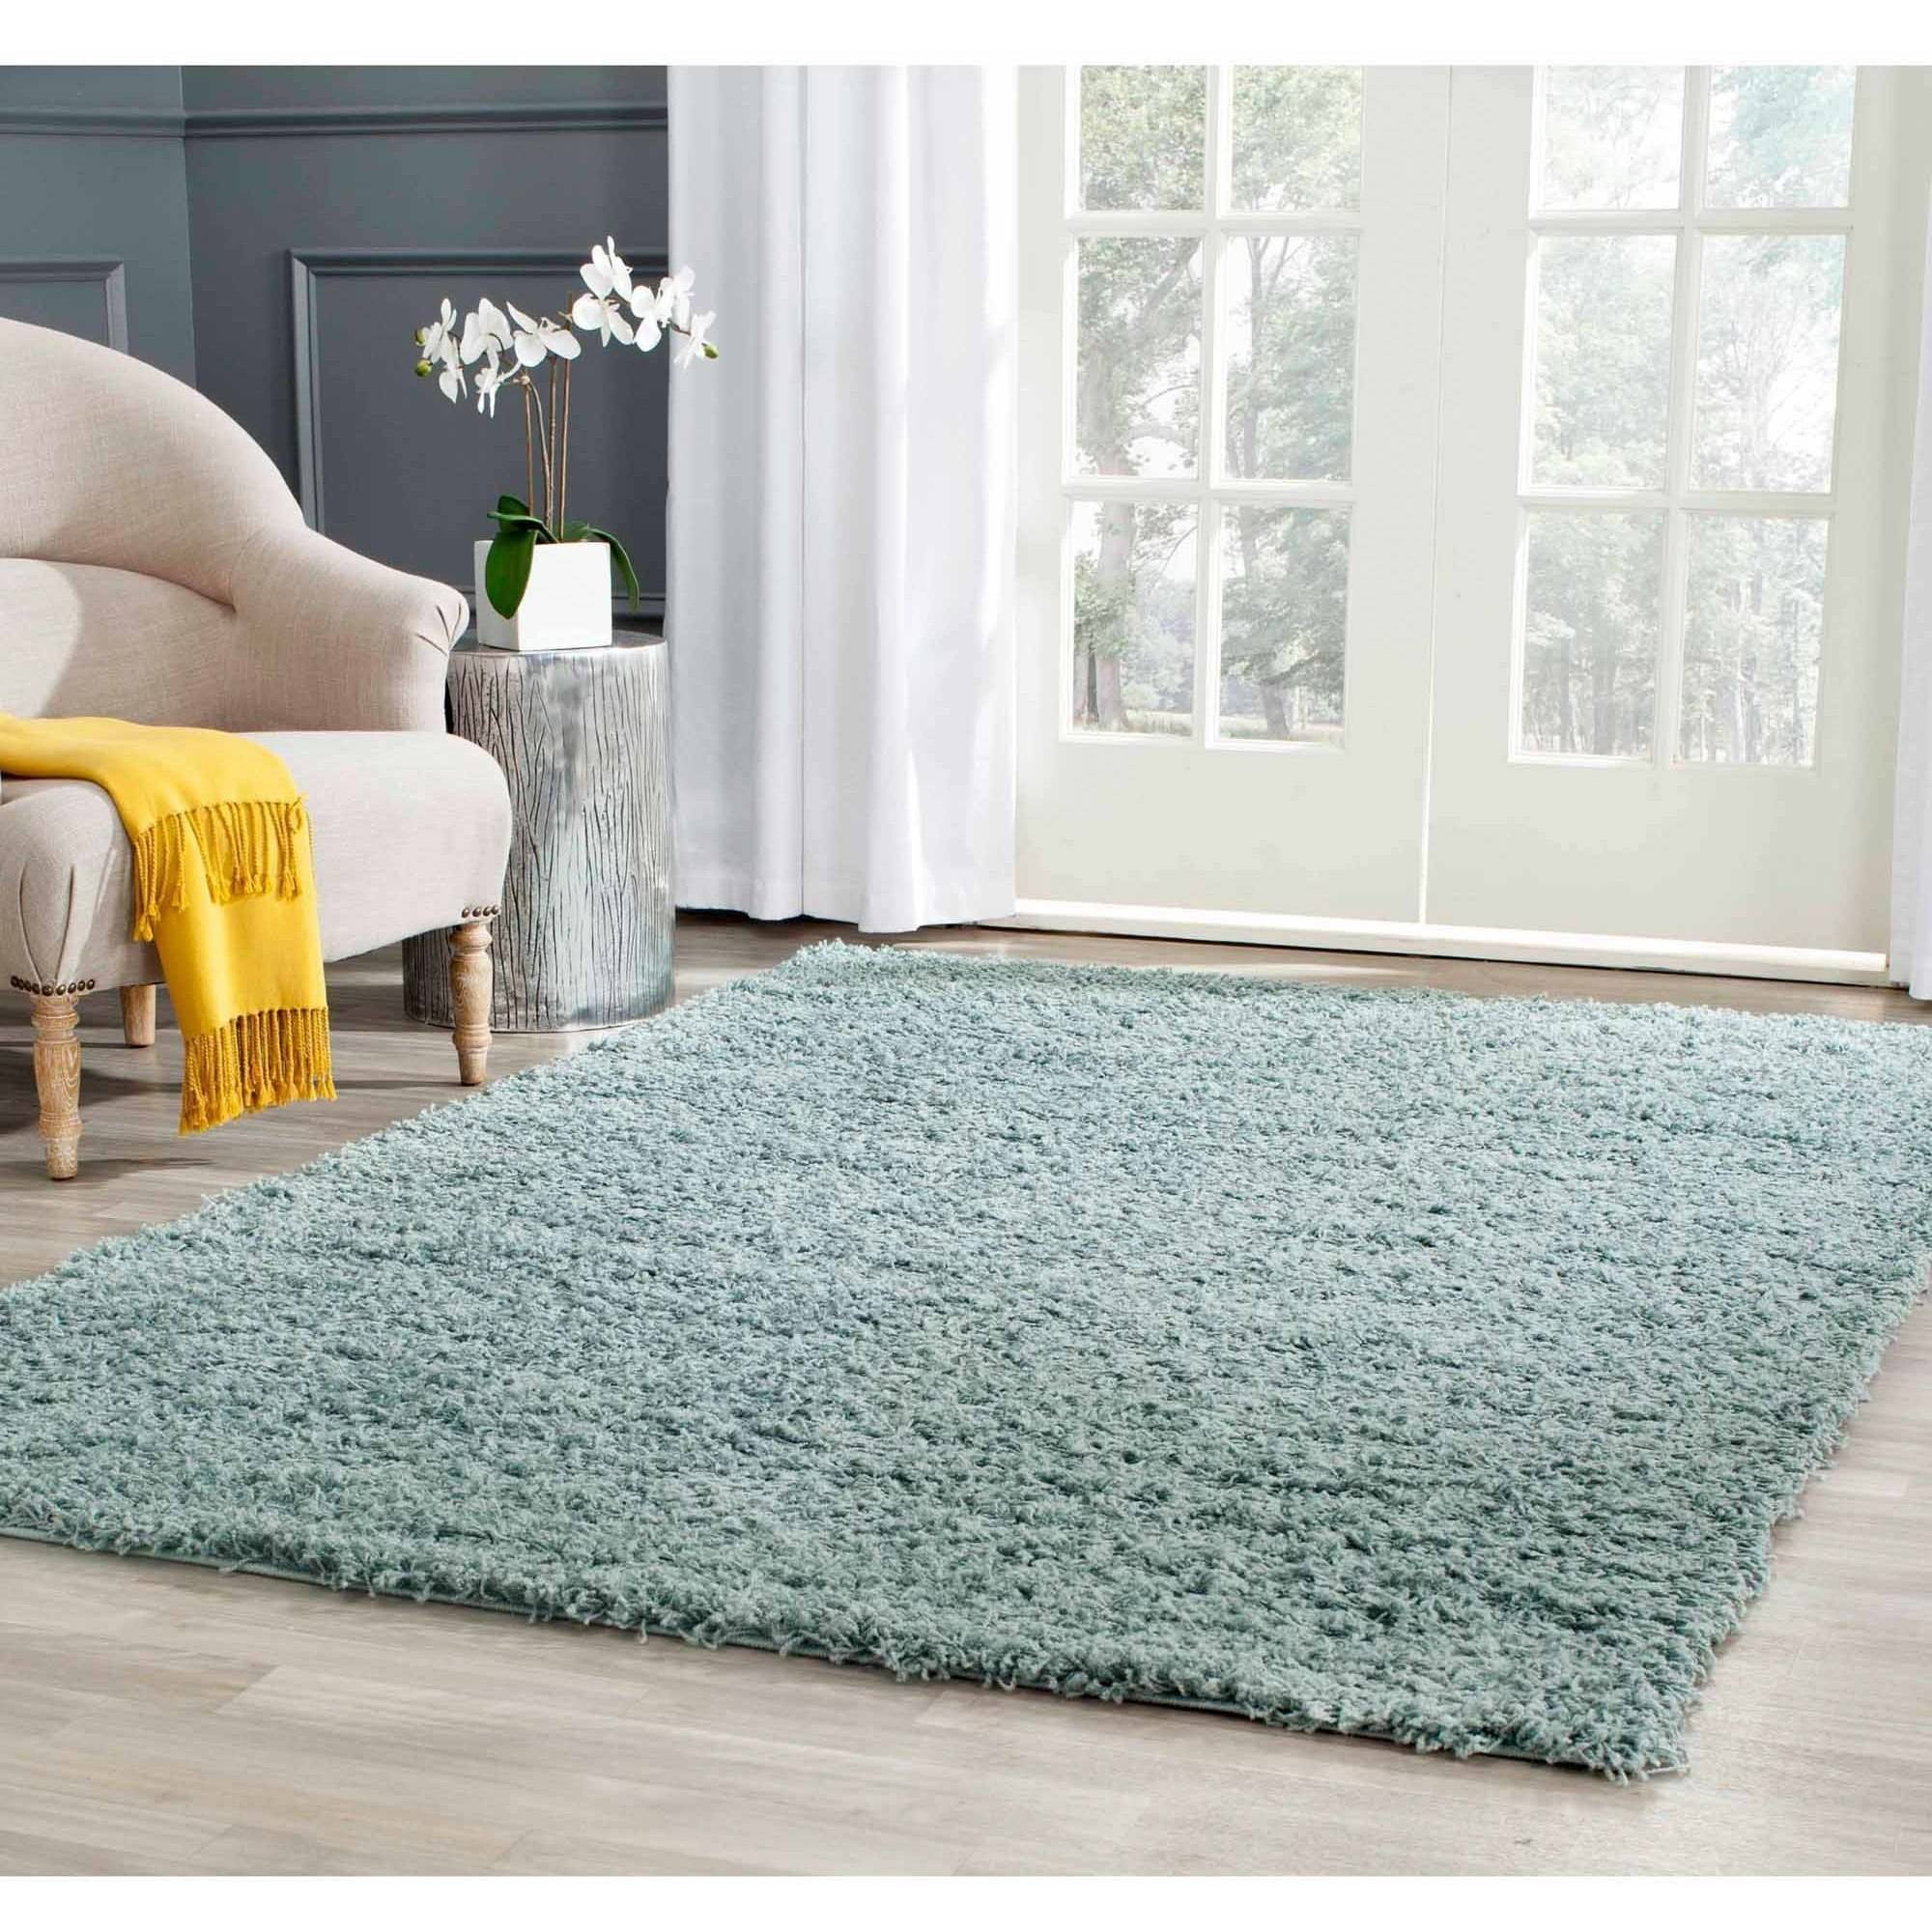 Safavieh Athens Power-Loomed Shag Area Rug Available In Multiple Colors And Sizes